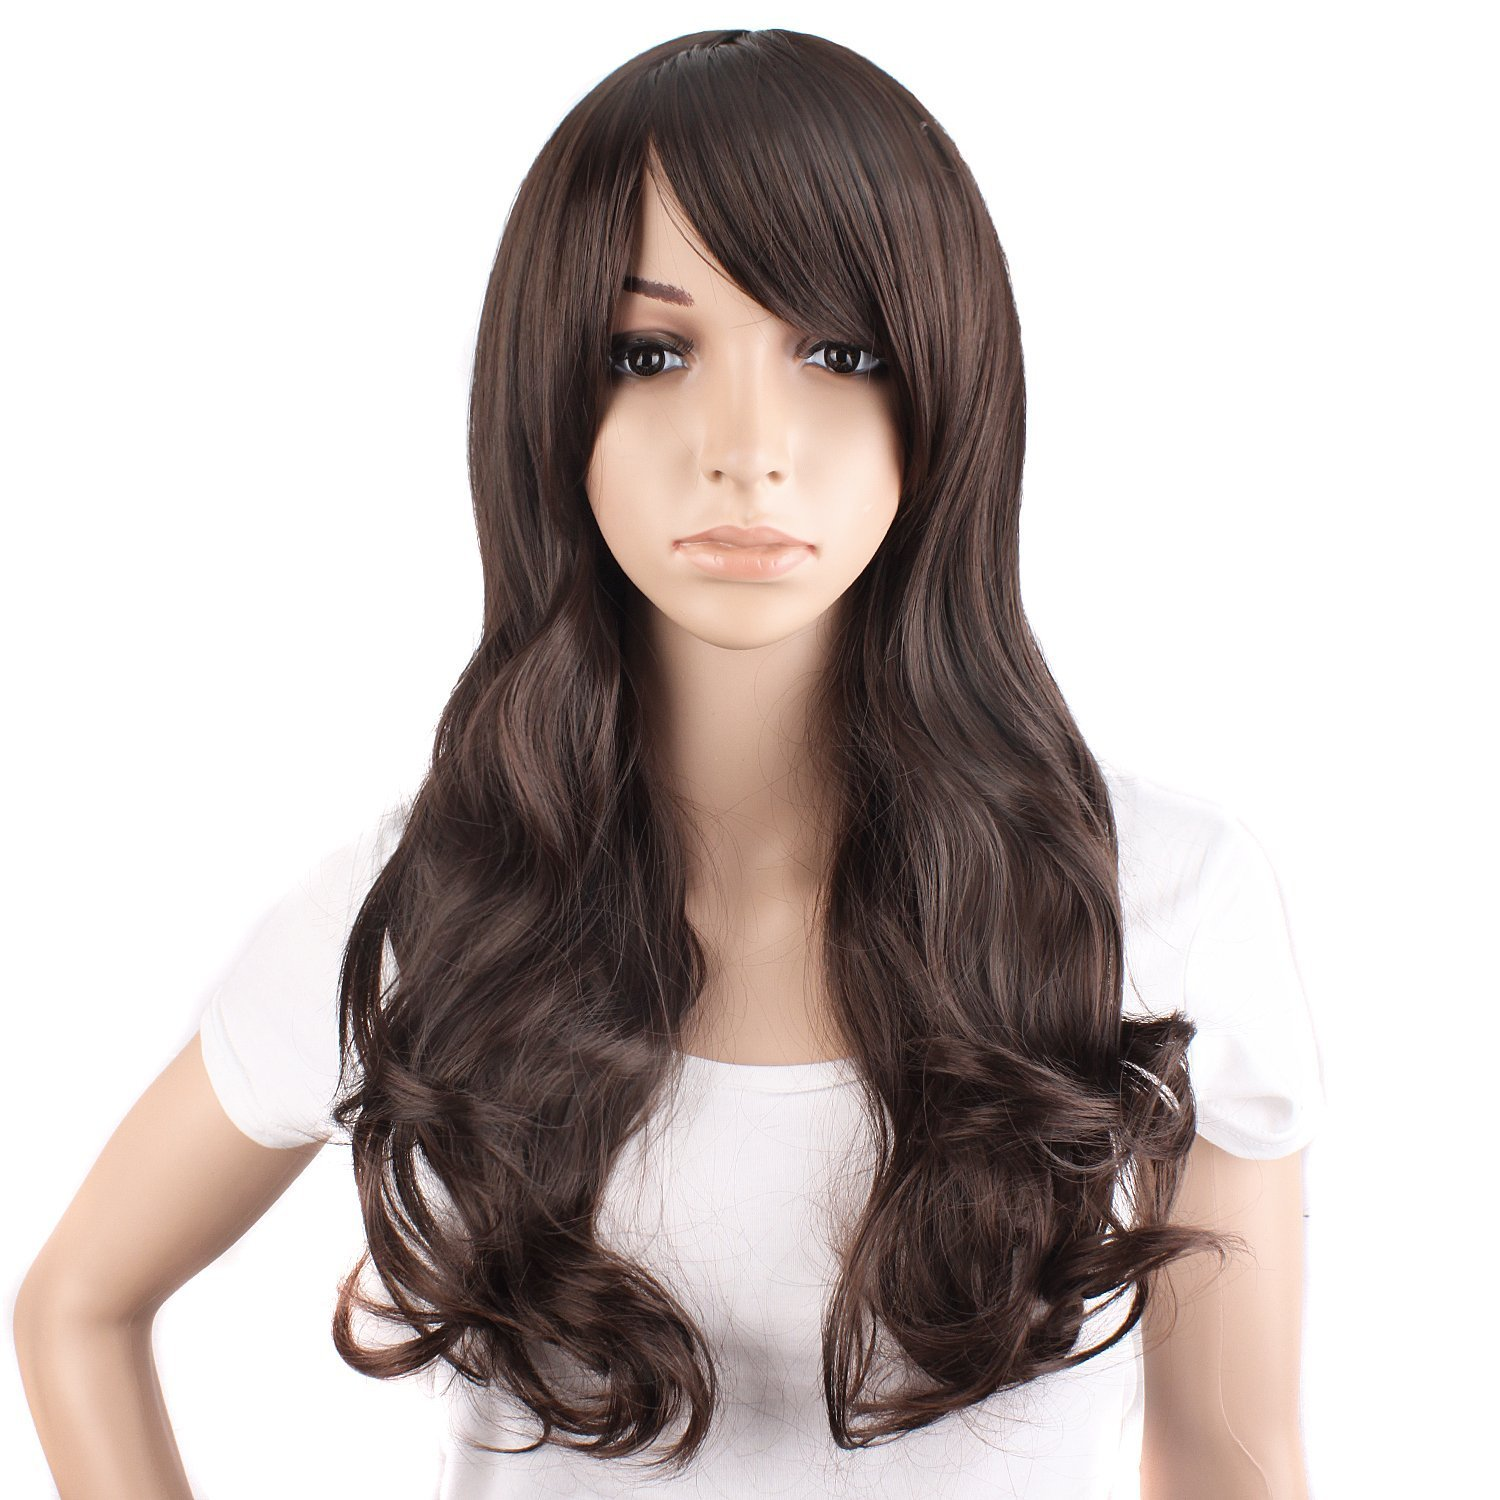 amazoncom mapofbeauty 50cm 20quot long curly natural